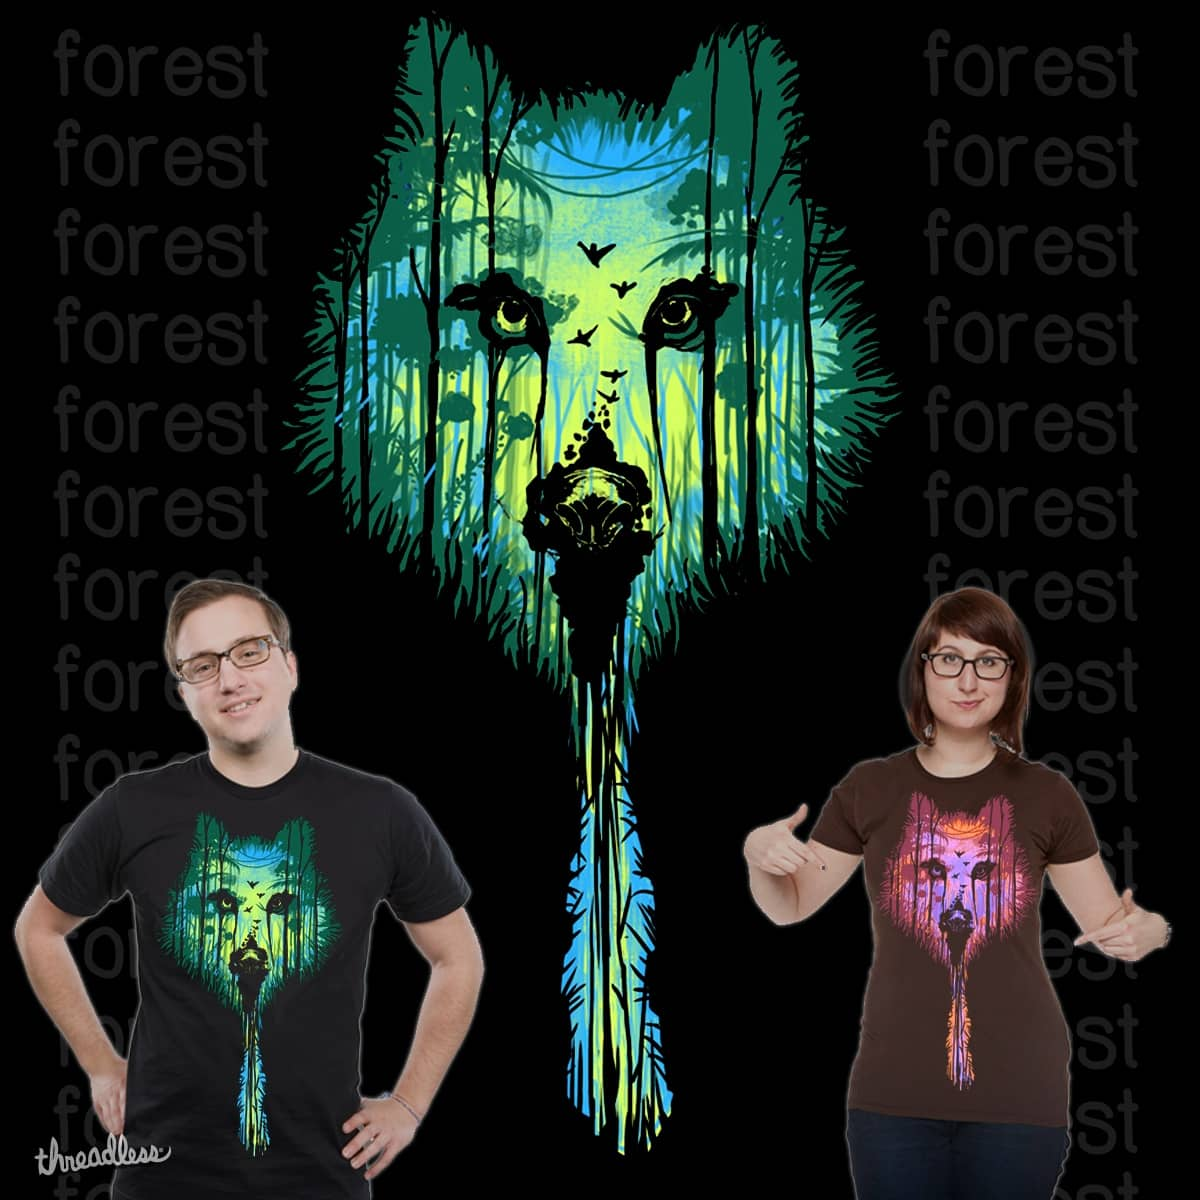 WINTER forest by nokitomedo on Threadless